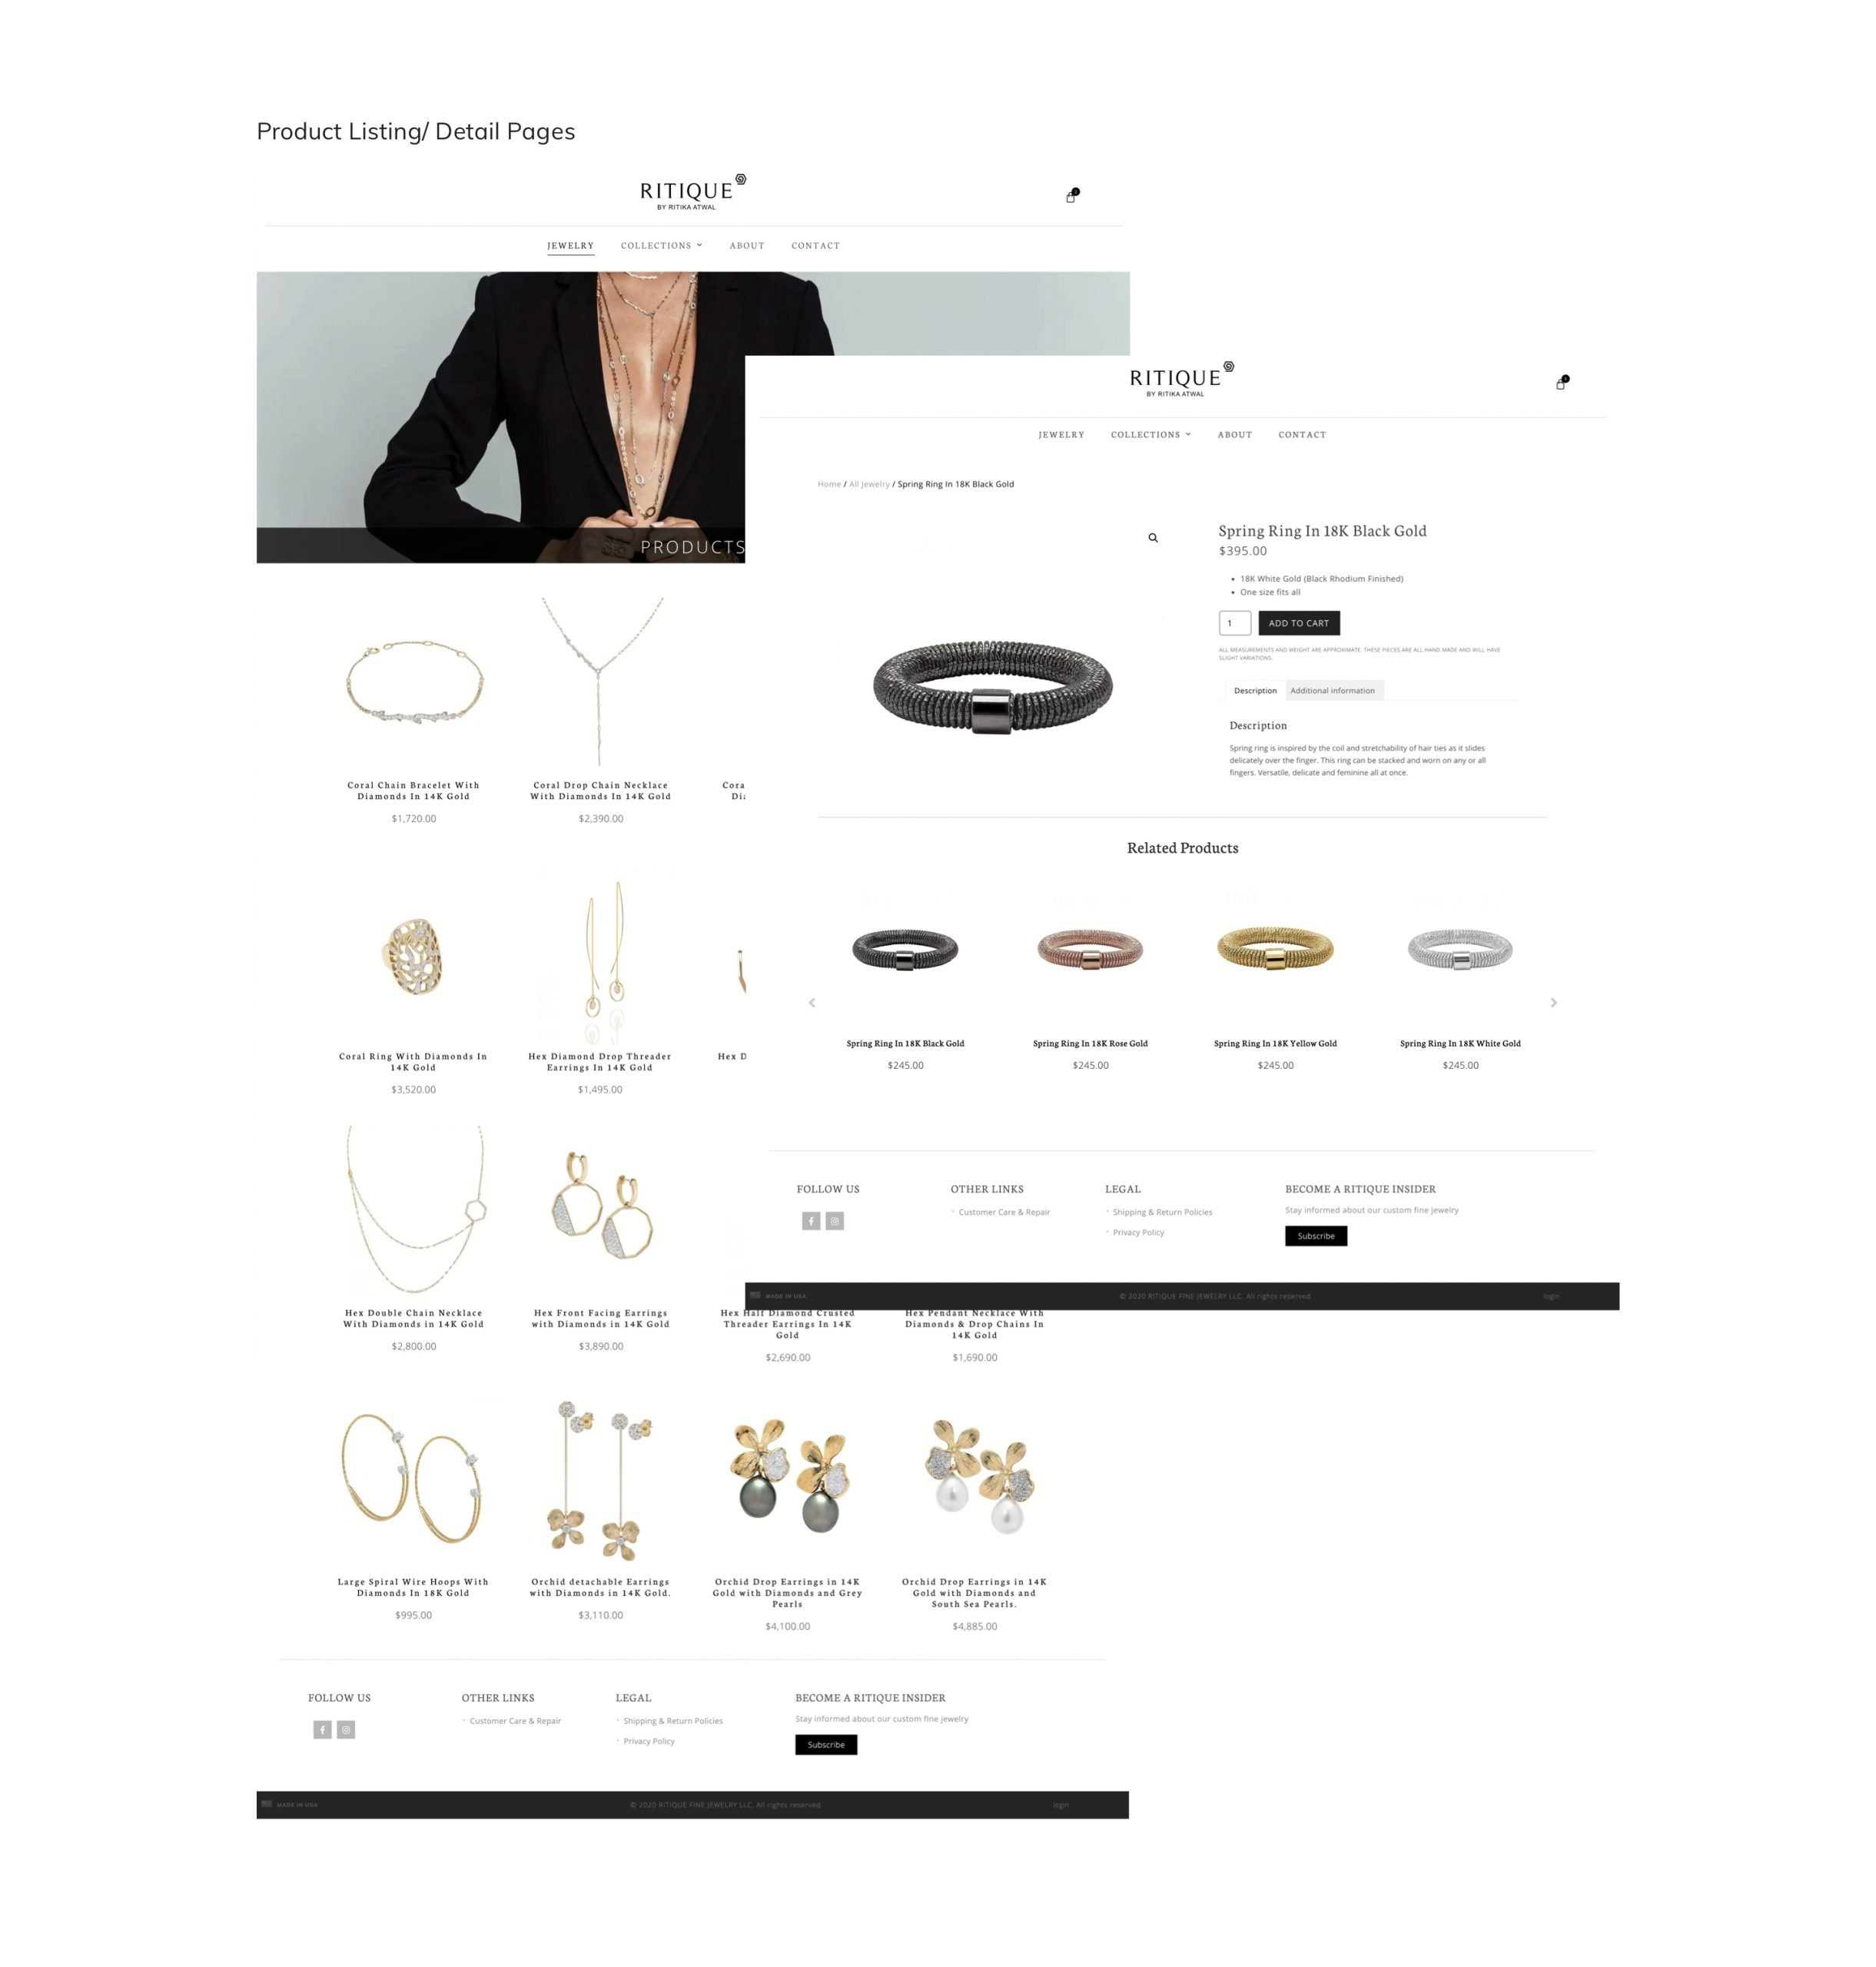 Ritique by Ritika Atwal Product Listings and Detail Pages